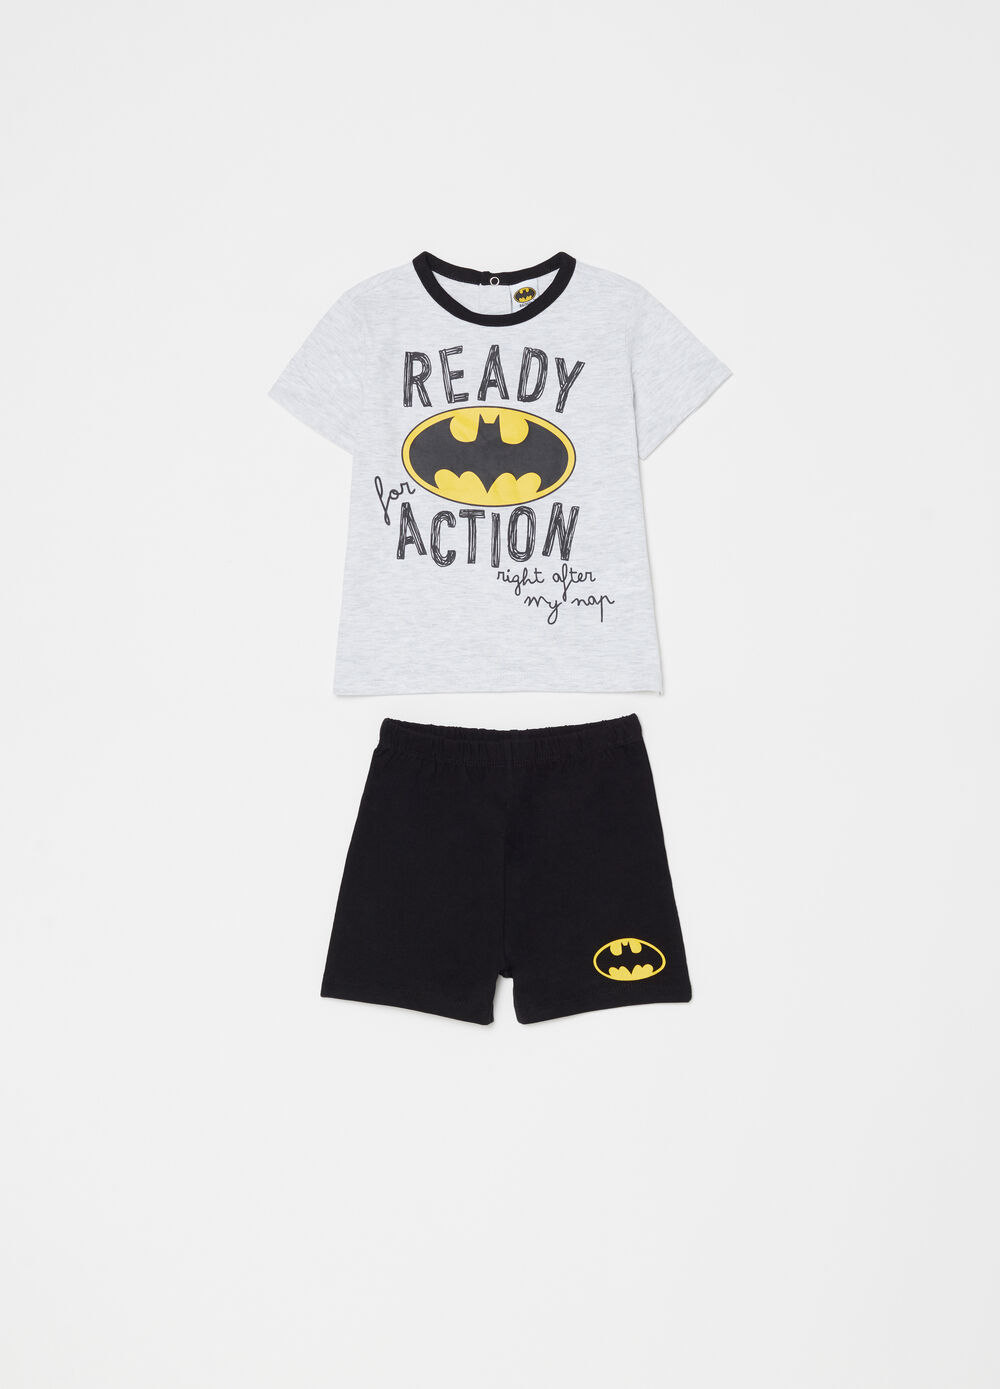 T-shirt and shorts pyjamas with Batman print